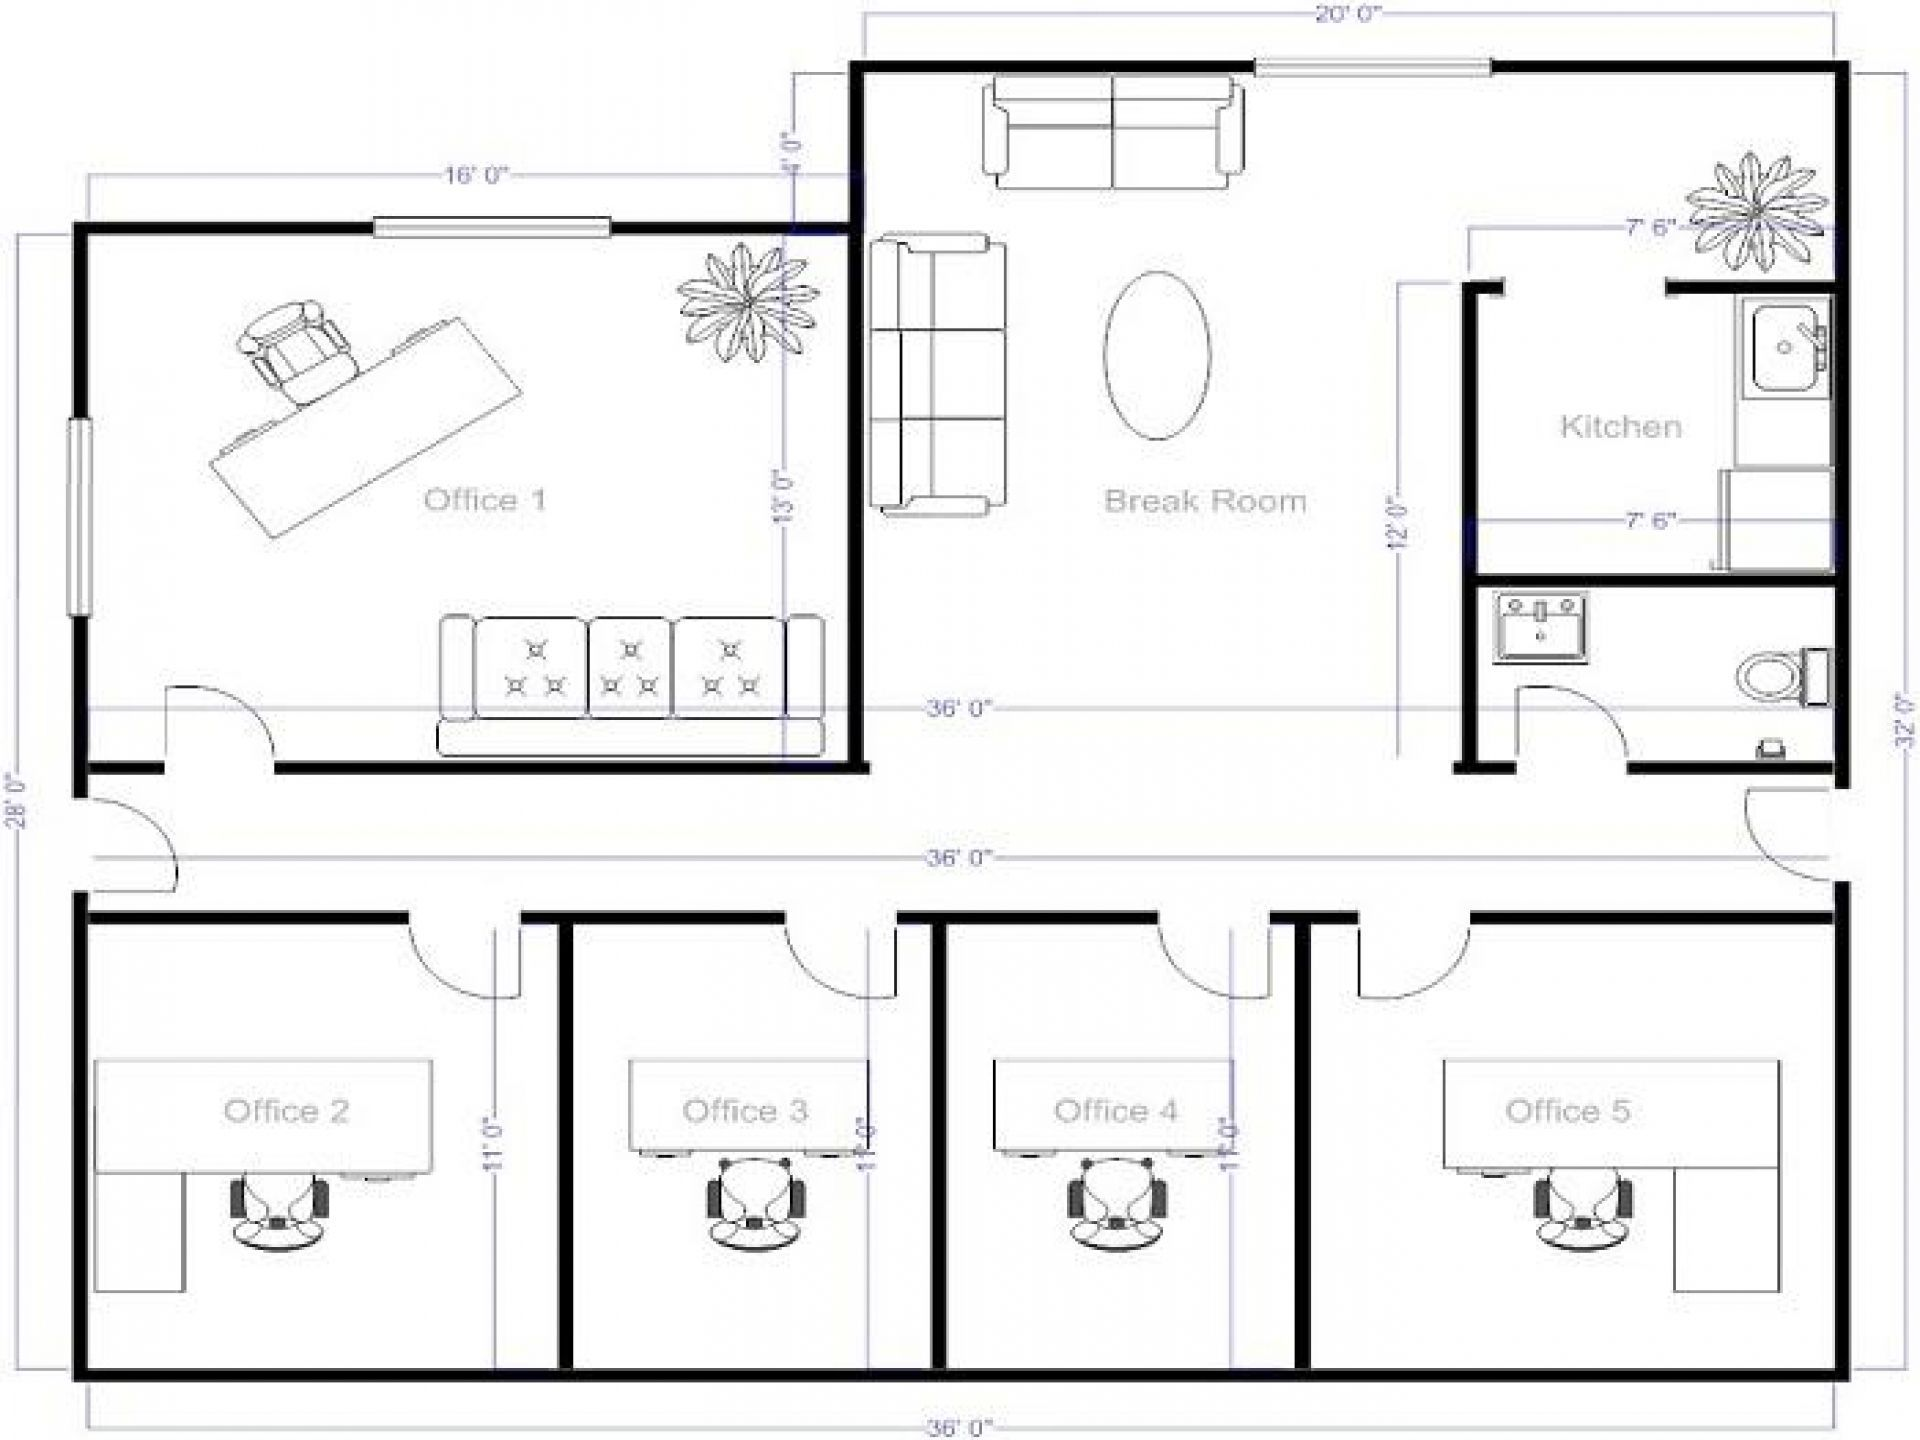 001 Dreaded Free Floor Plan Template High Def  Excel Home House SampleFull